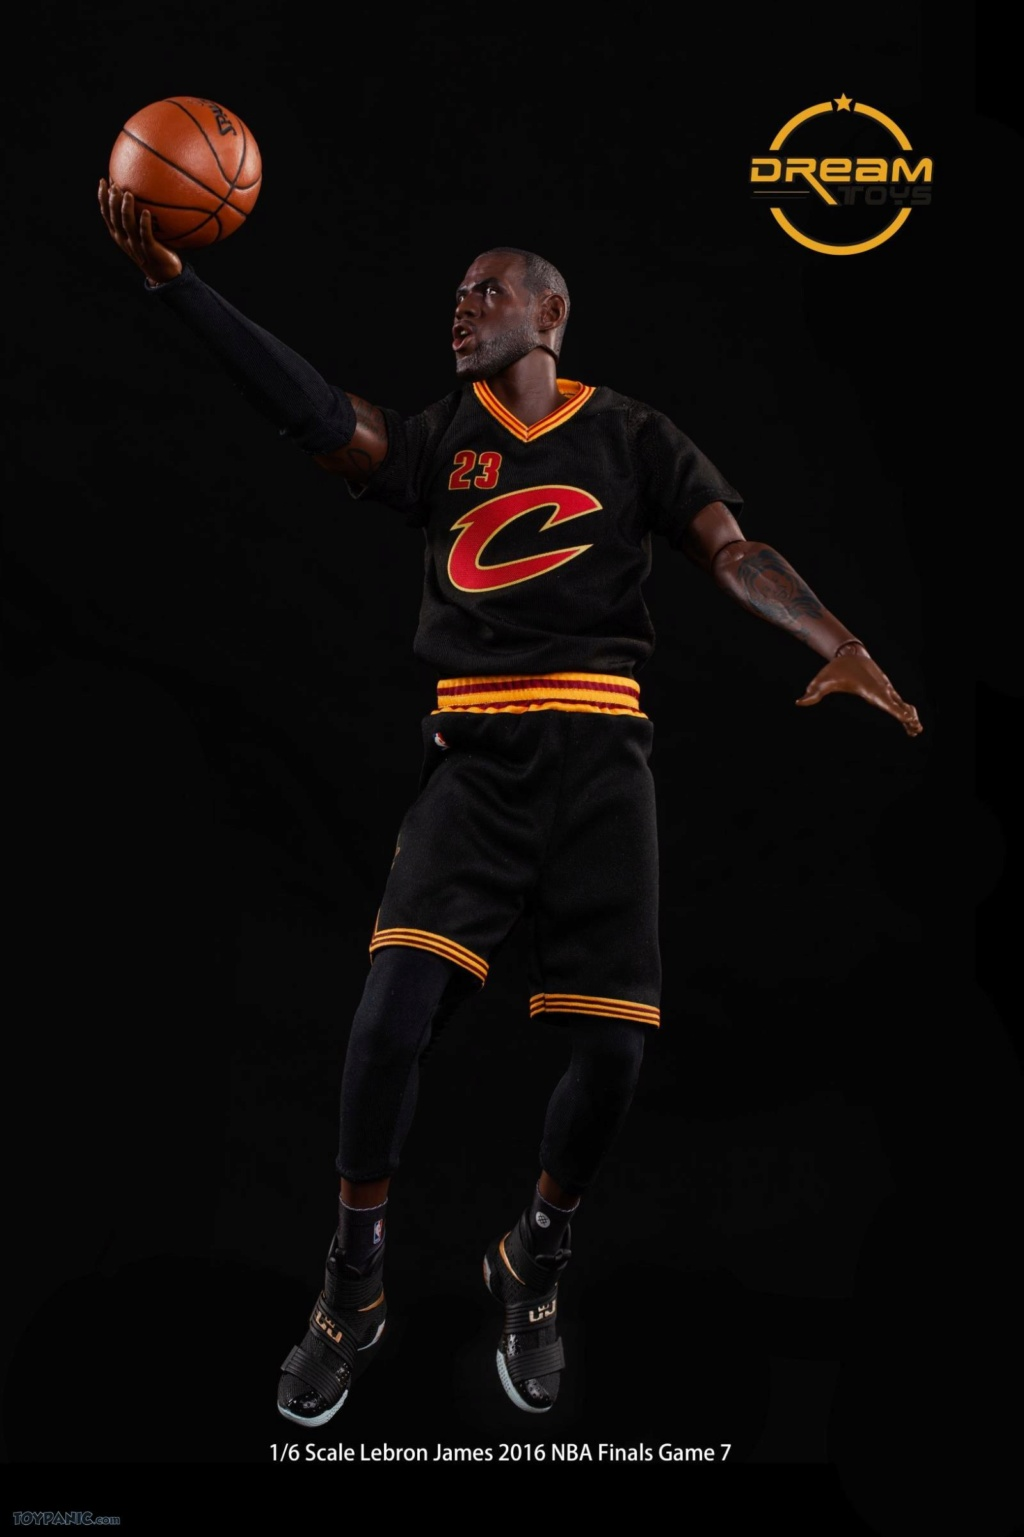 athlete - NEW PRODUCT: DreamToys: NBA Finals Jordan, Bryant, & James 1/6 scale action figures 11420252